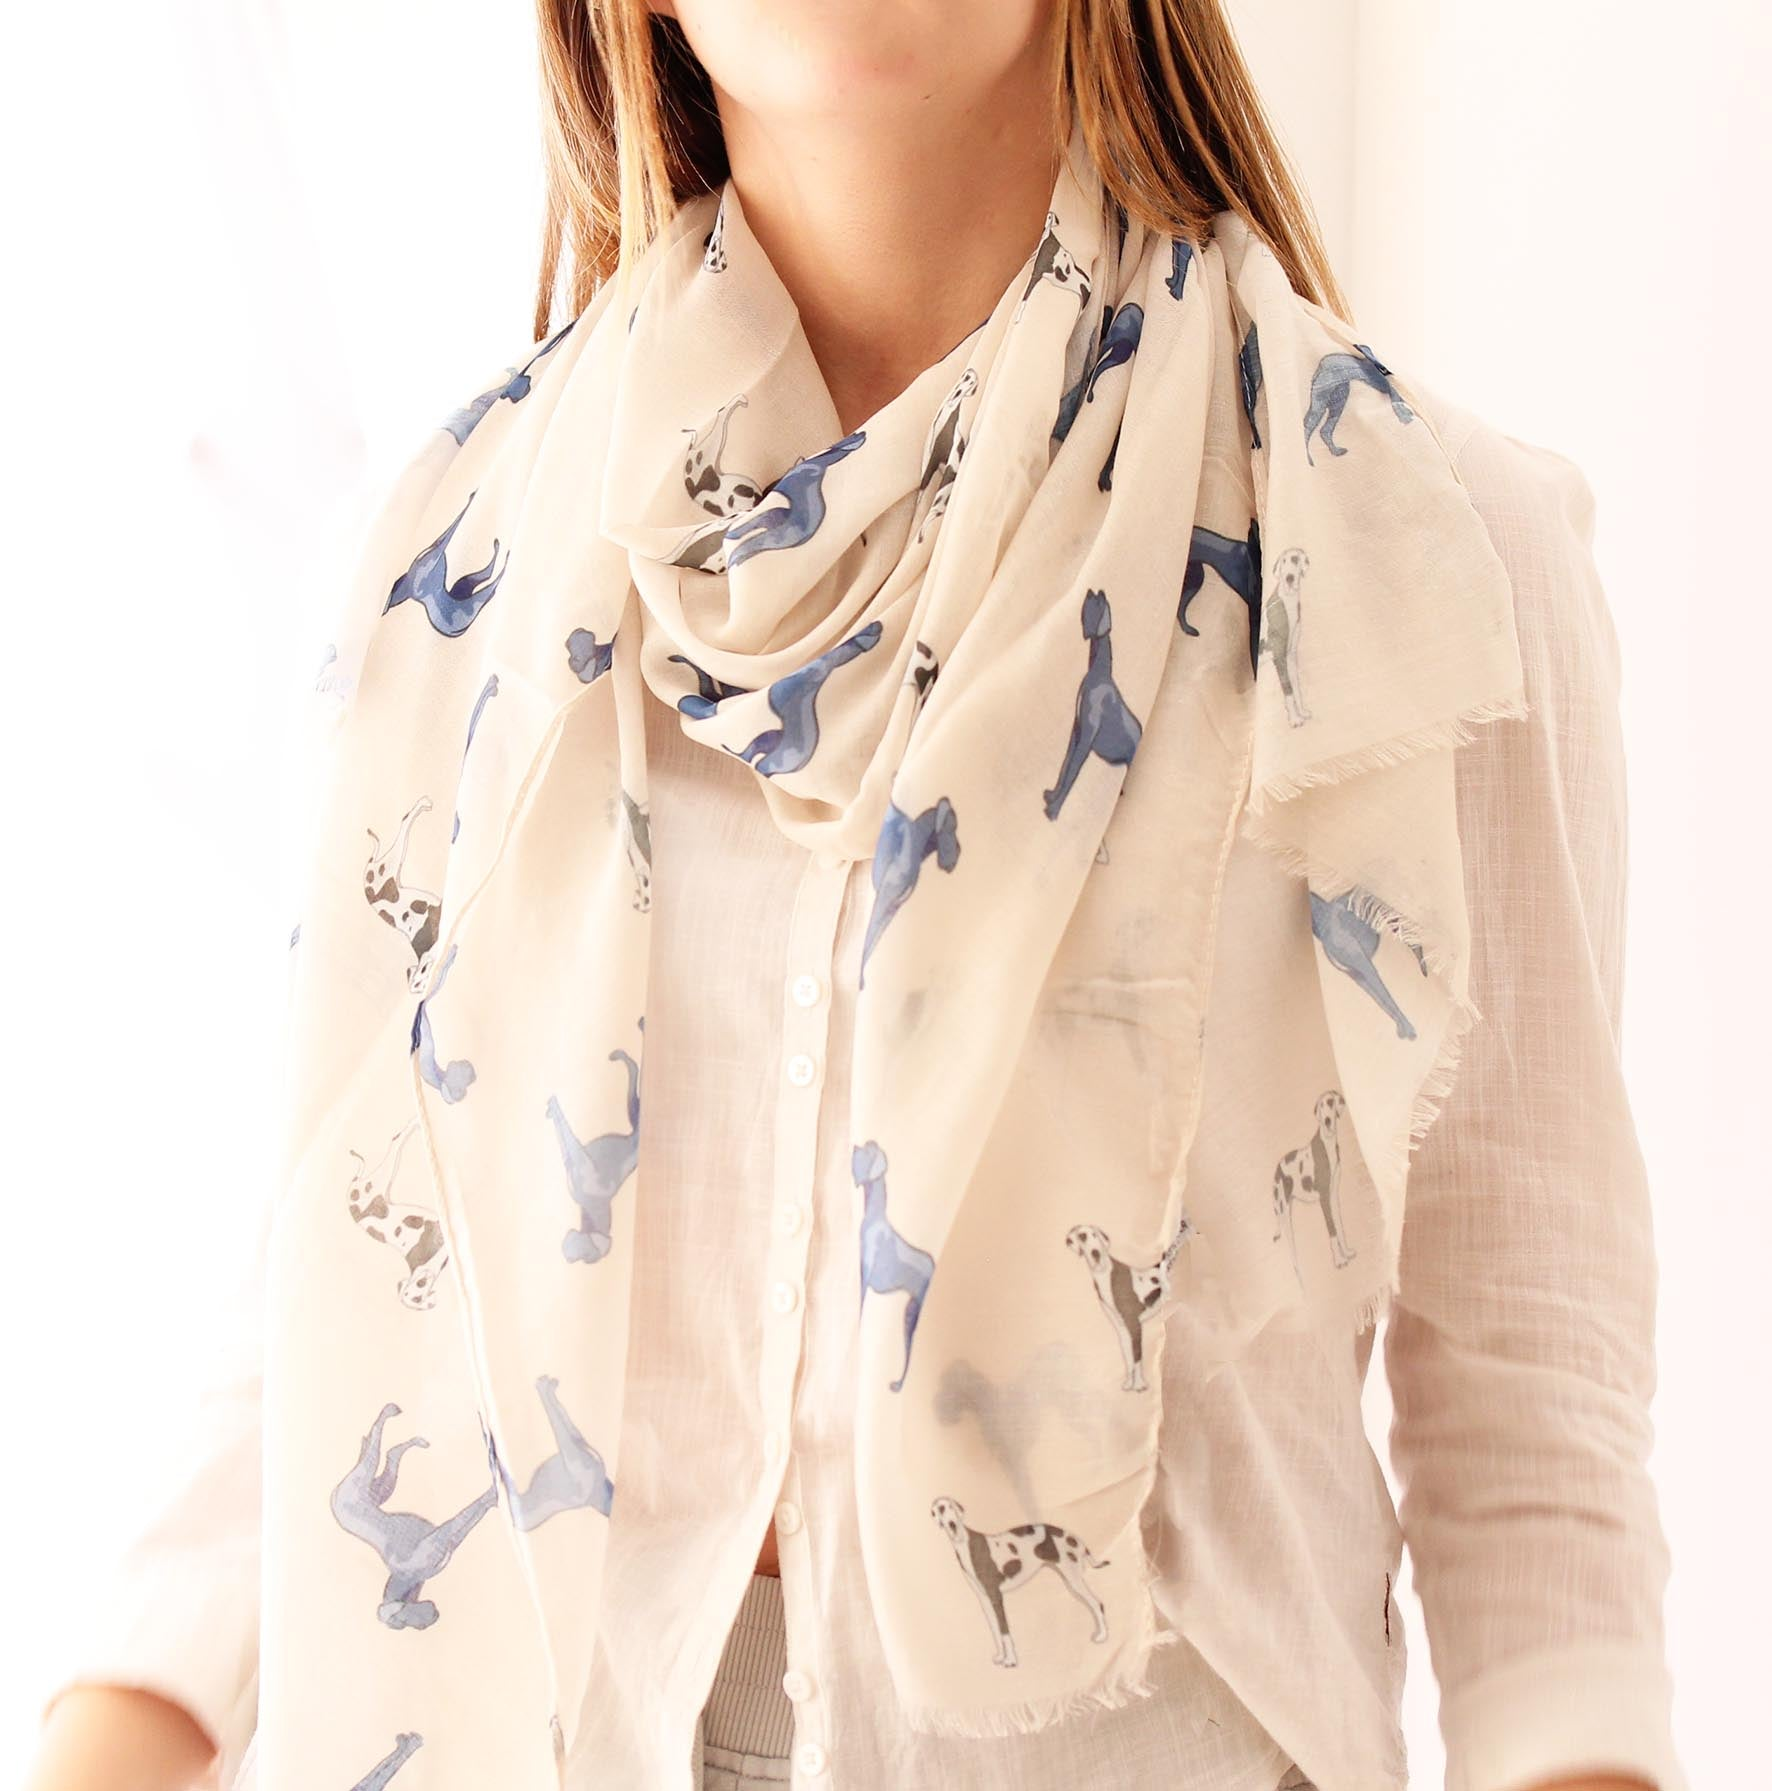 Great Dane and Dalmation Printed Scarf for Dog Lovers